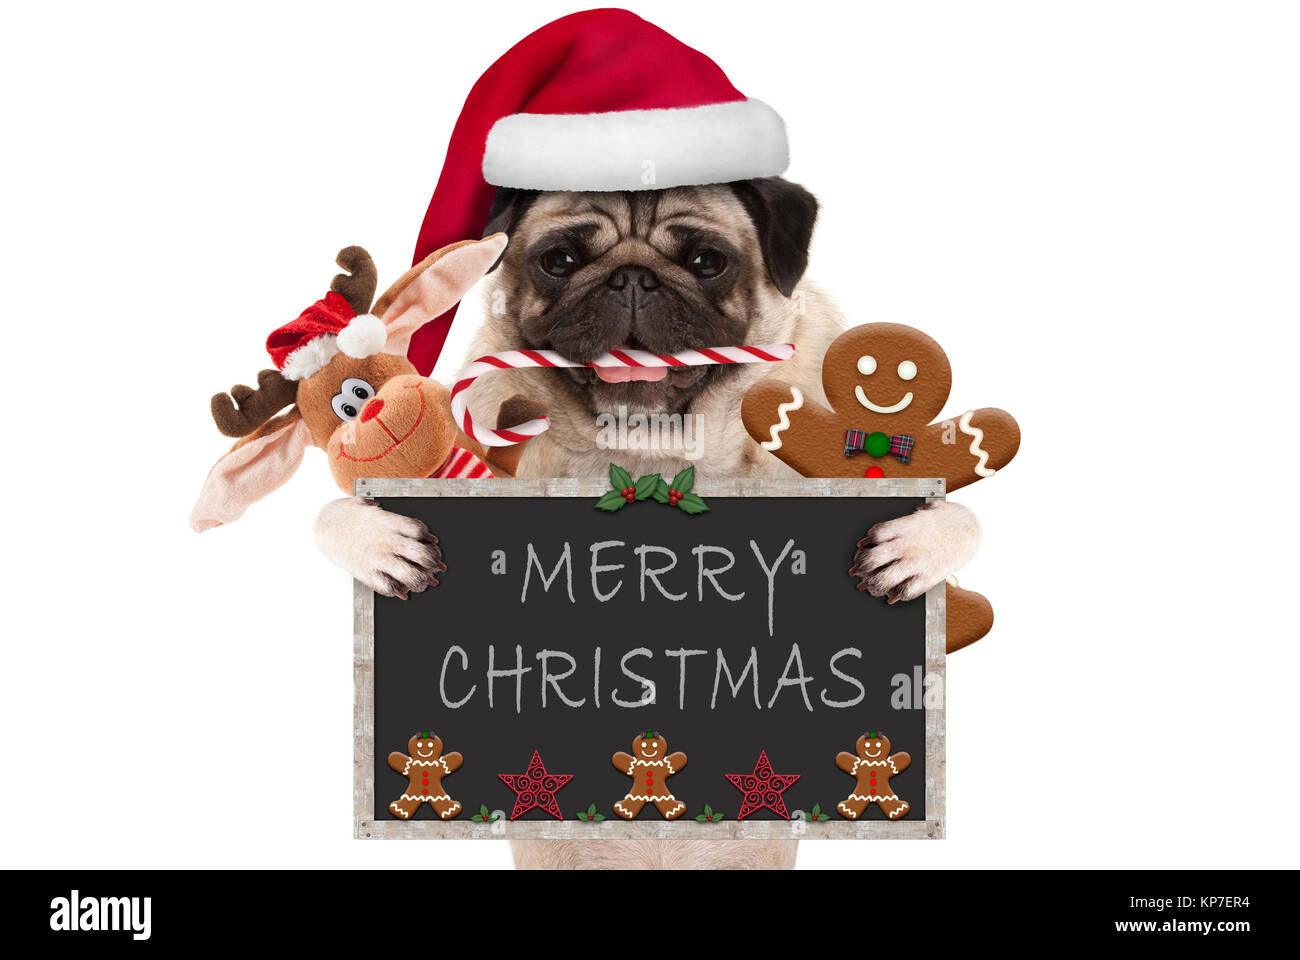 cute Christmas pug dog with santa hat and candy cane, toys and cookies, holding up blackboard, isolated on white - Stock Image